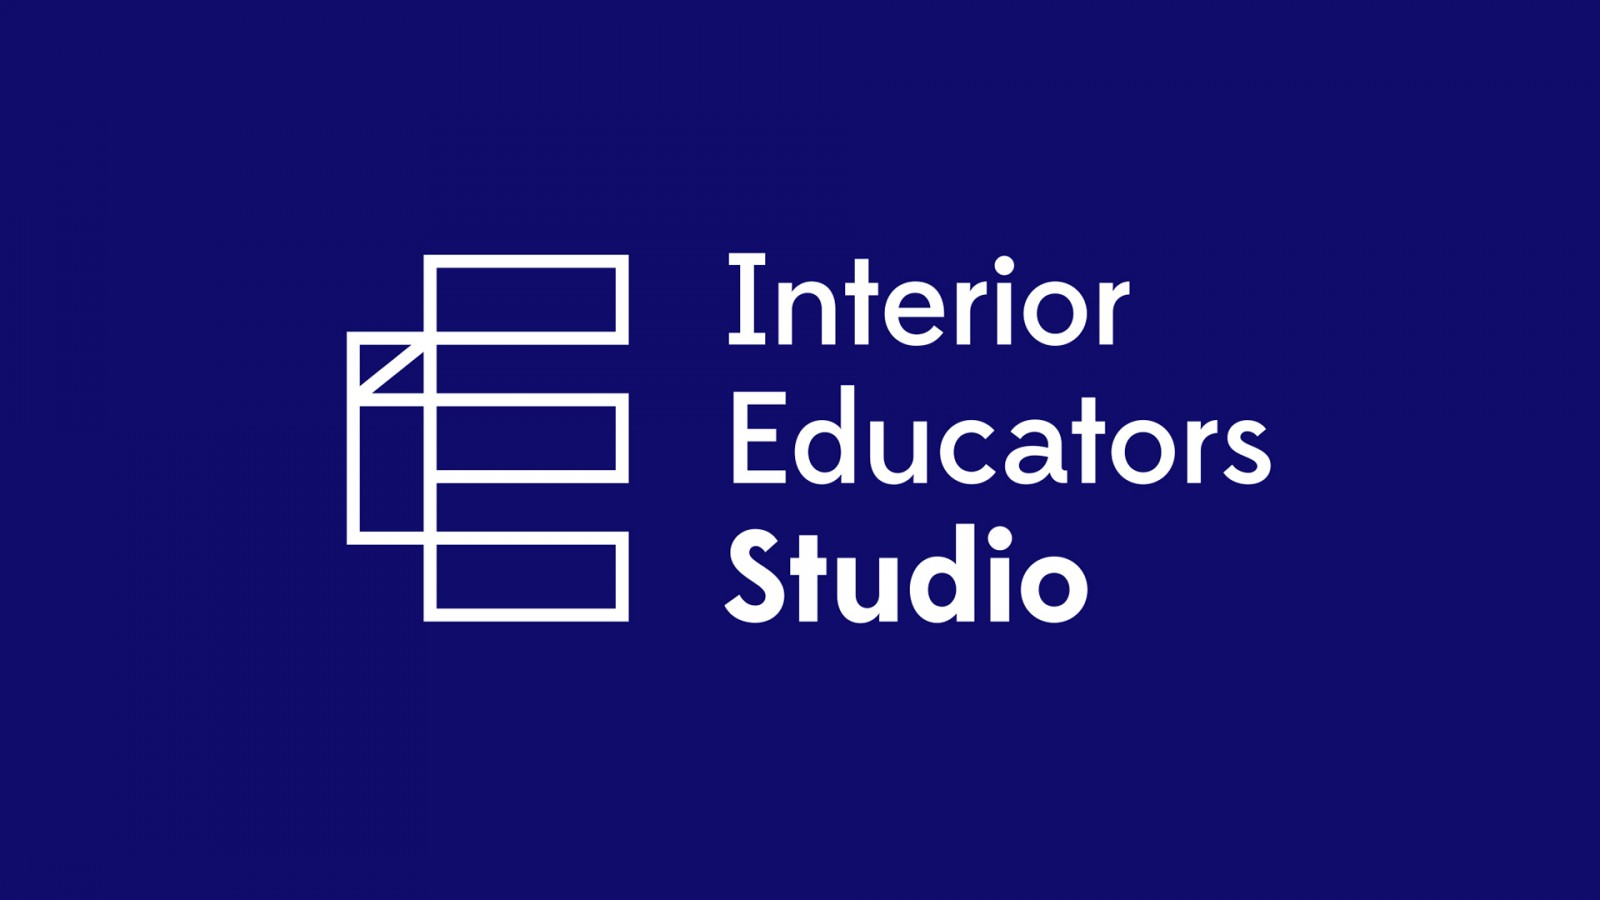 image for Interior Educators Branding project